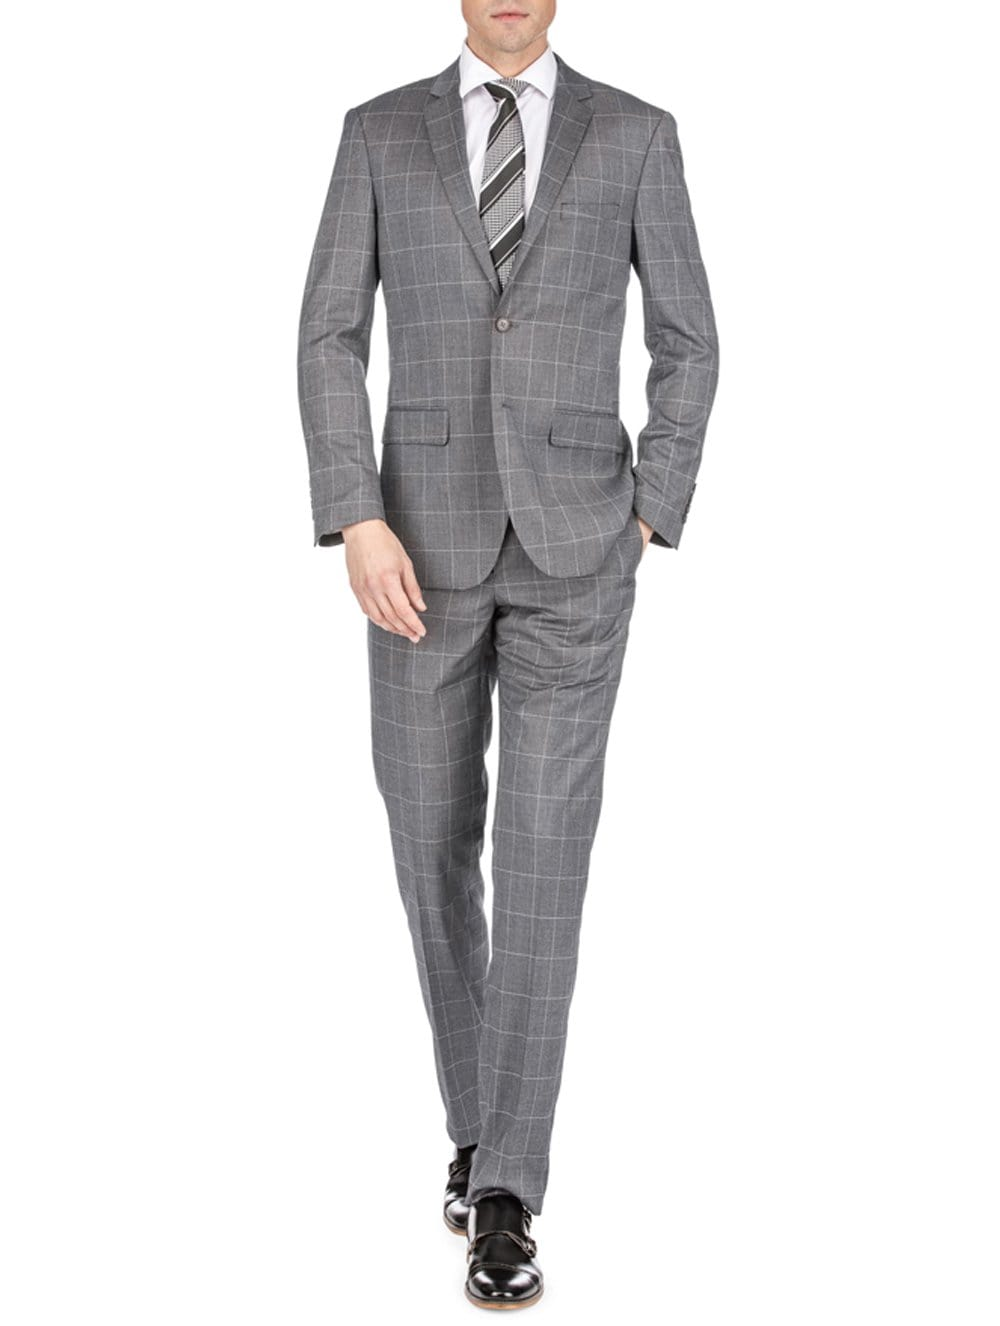 DAILY HAUTE Men's Suits GREY / 36Rx30W Gino Vitale Men's Traveler Check Slim Fit Suits